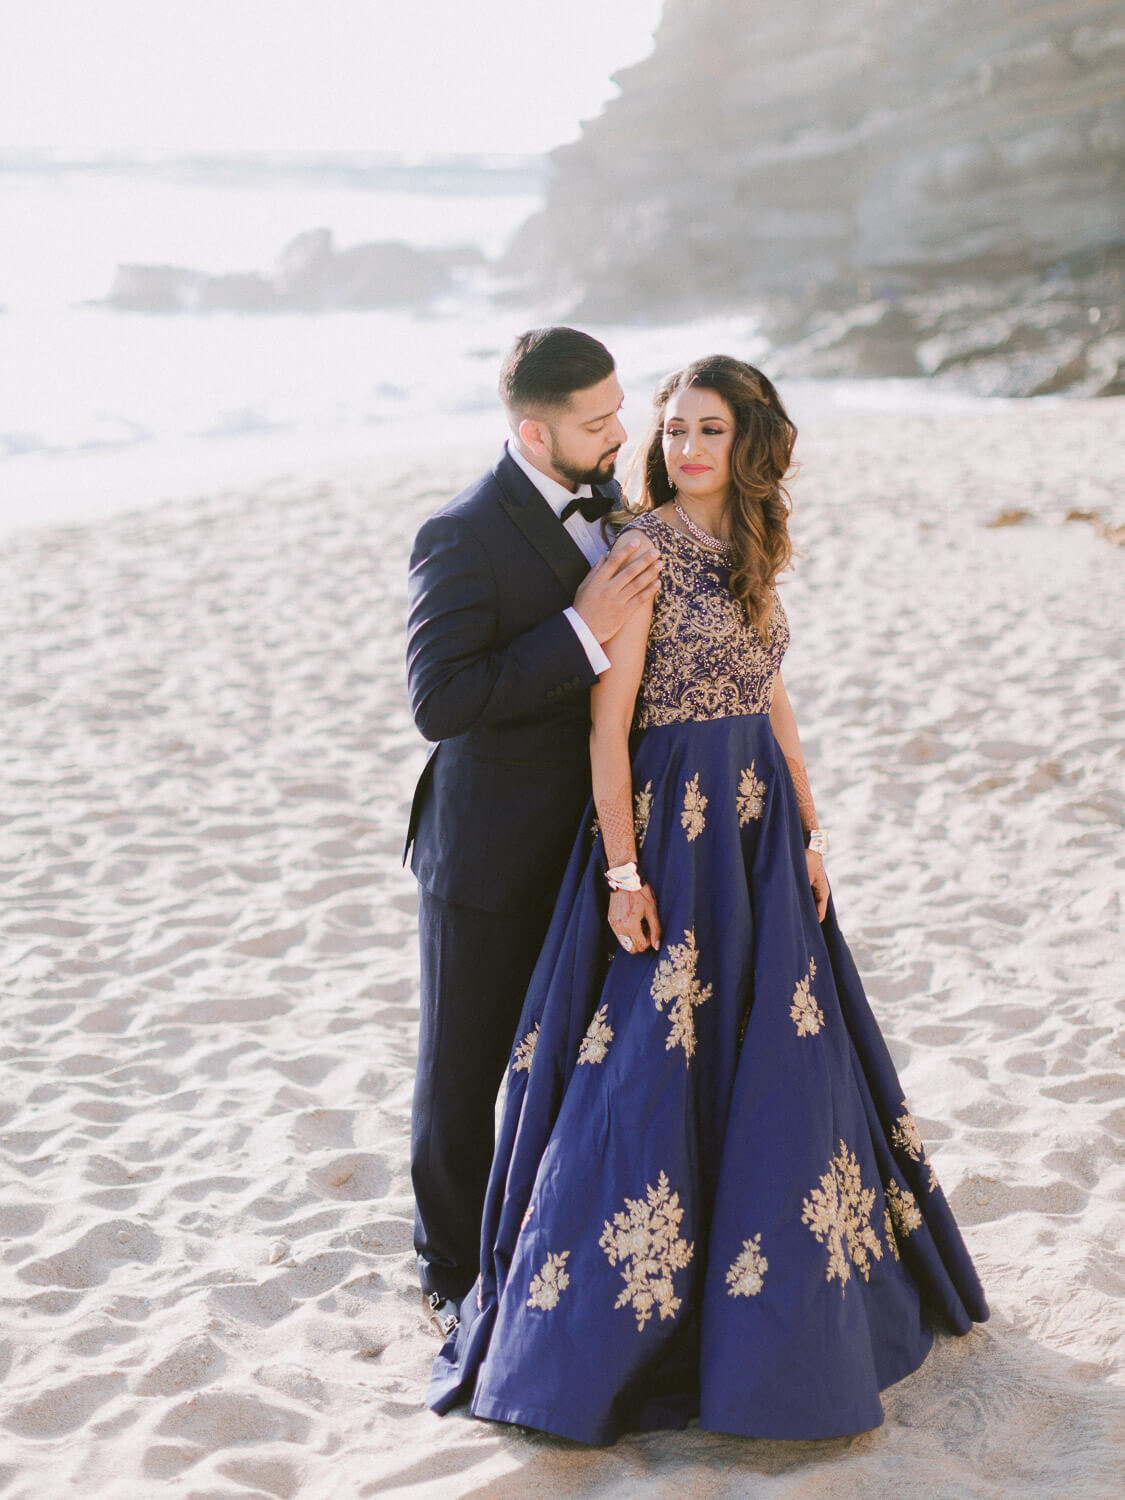 Hindu bride and groom in formal attires portrait at the beach by Portugal Wedding Photographer